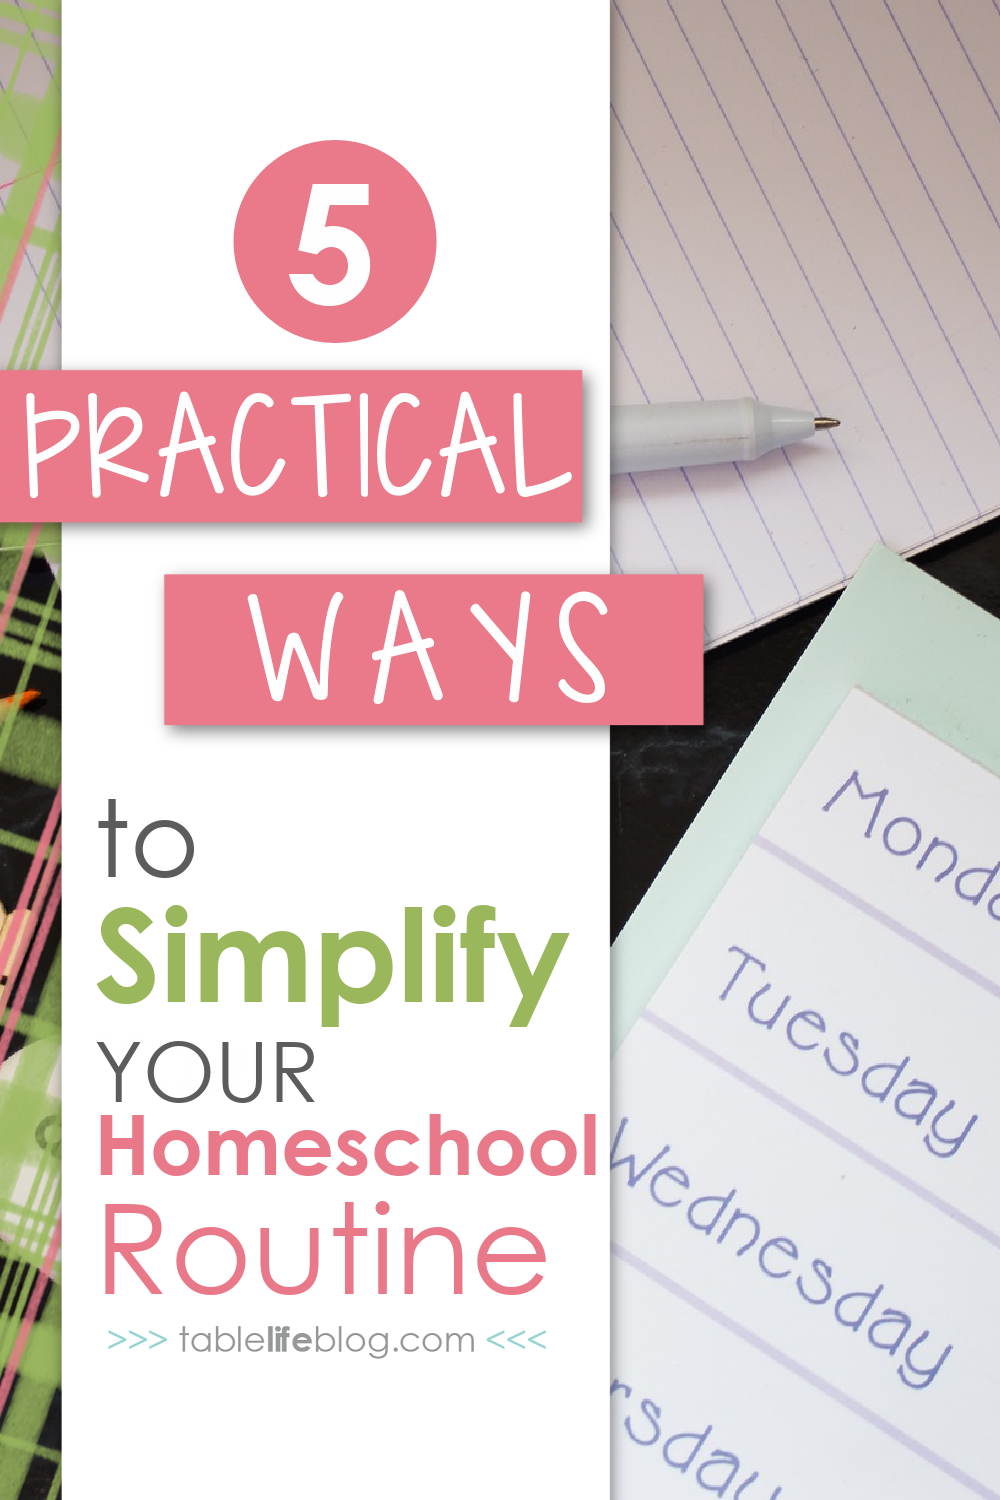 Simplified homeschool days set a breathable pace & maintain a love for learning.